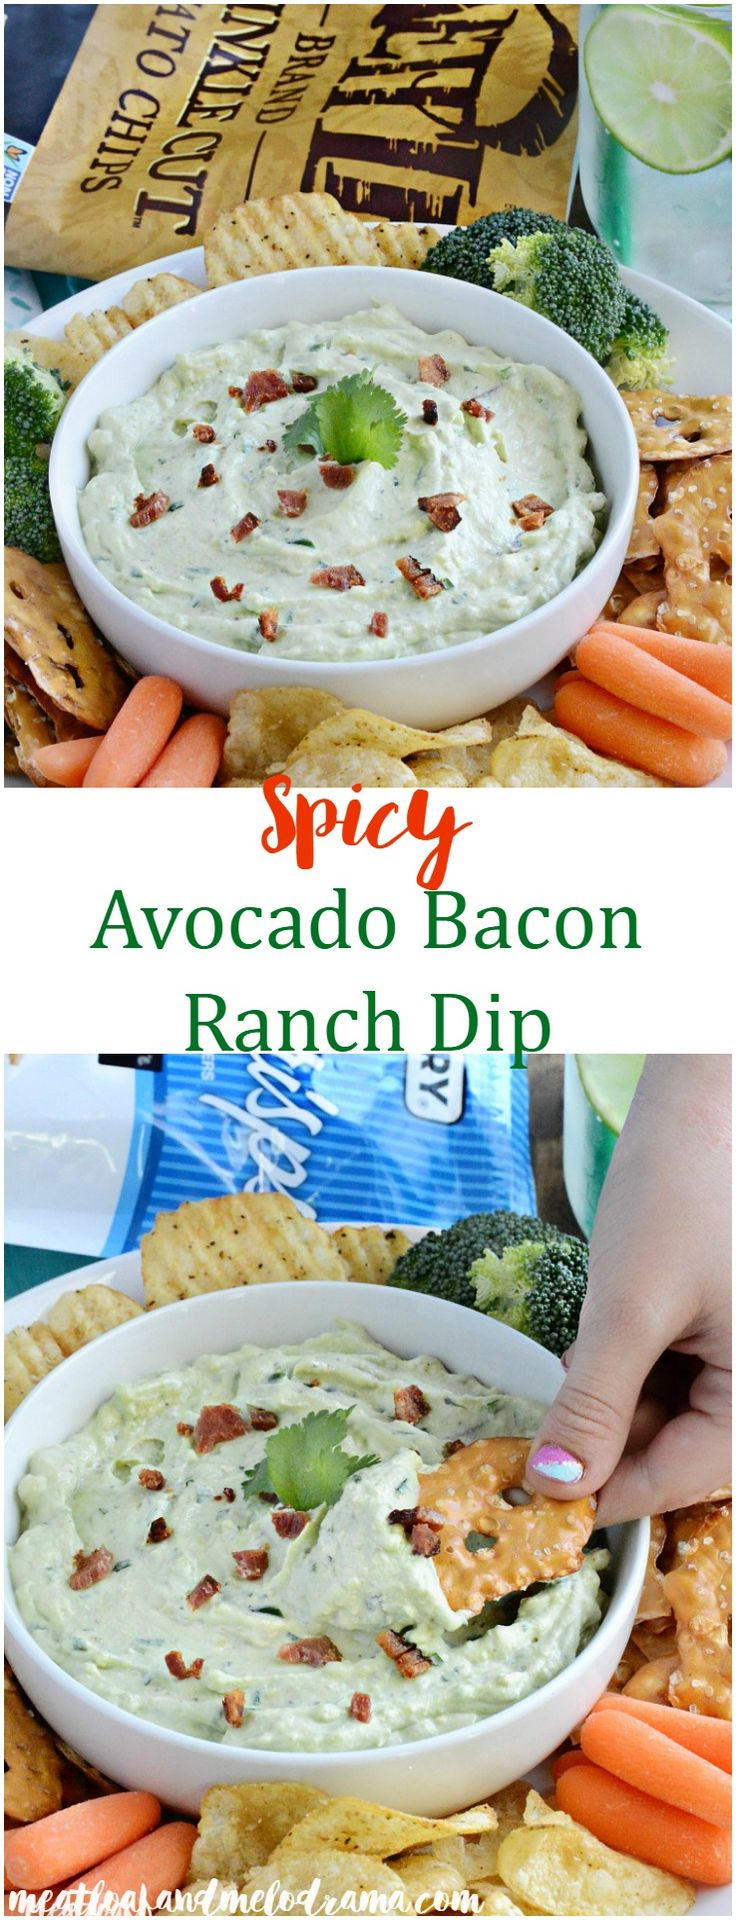 Spicy Avocado Bacon Ranch Dip - A light, fluffy dip that's perfect for your snack or appetizer table on game days, parties or anytime! AD #TheNewFanFavorites @kettlebrand @pretzelcrisps